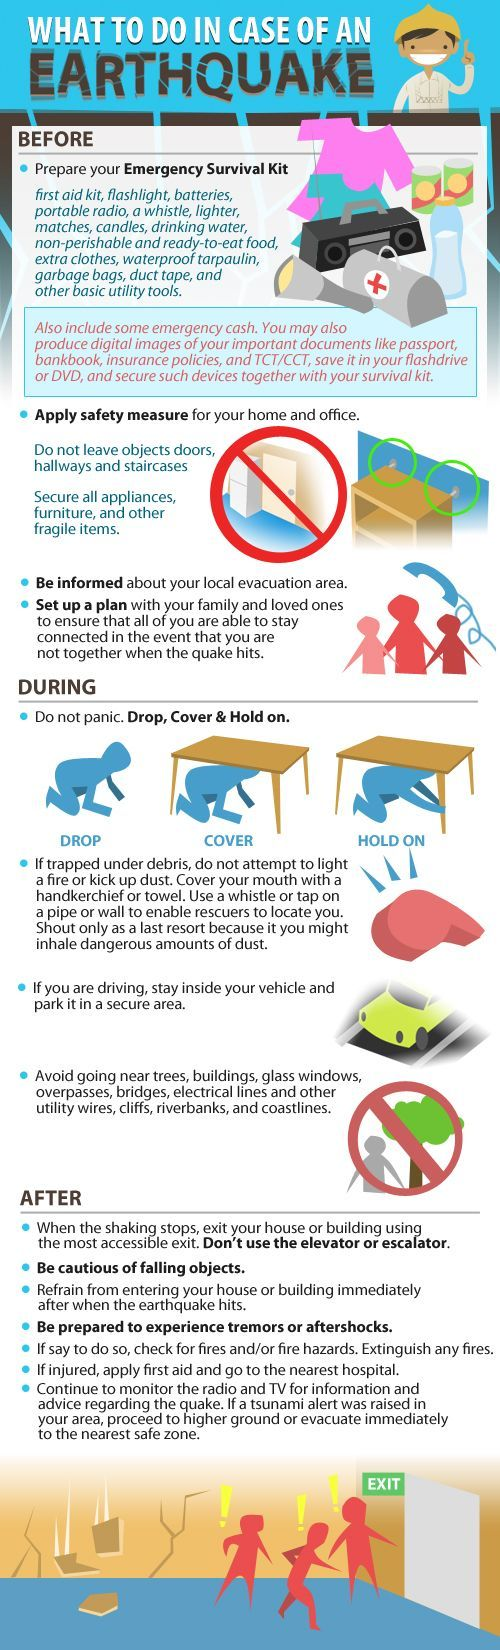 Earthquake Safety Tips What to do Before, during, and